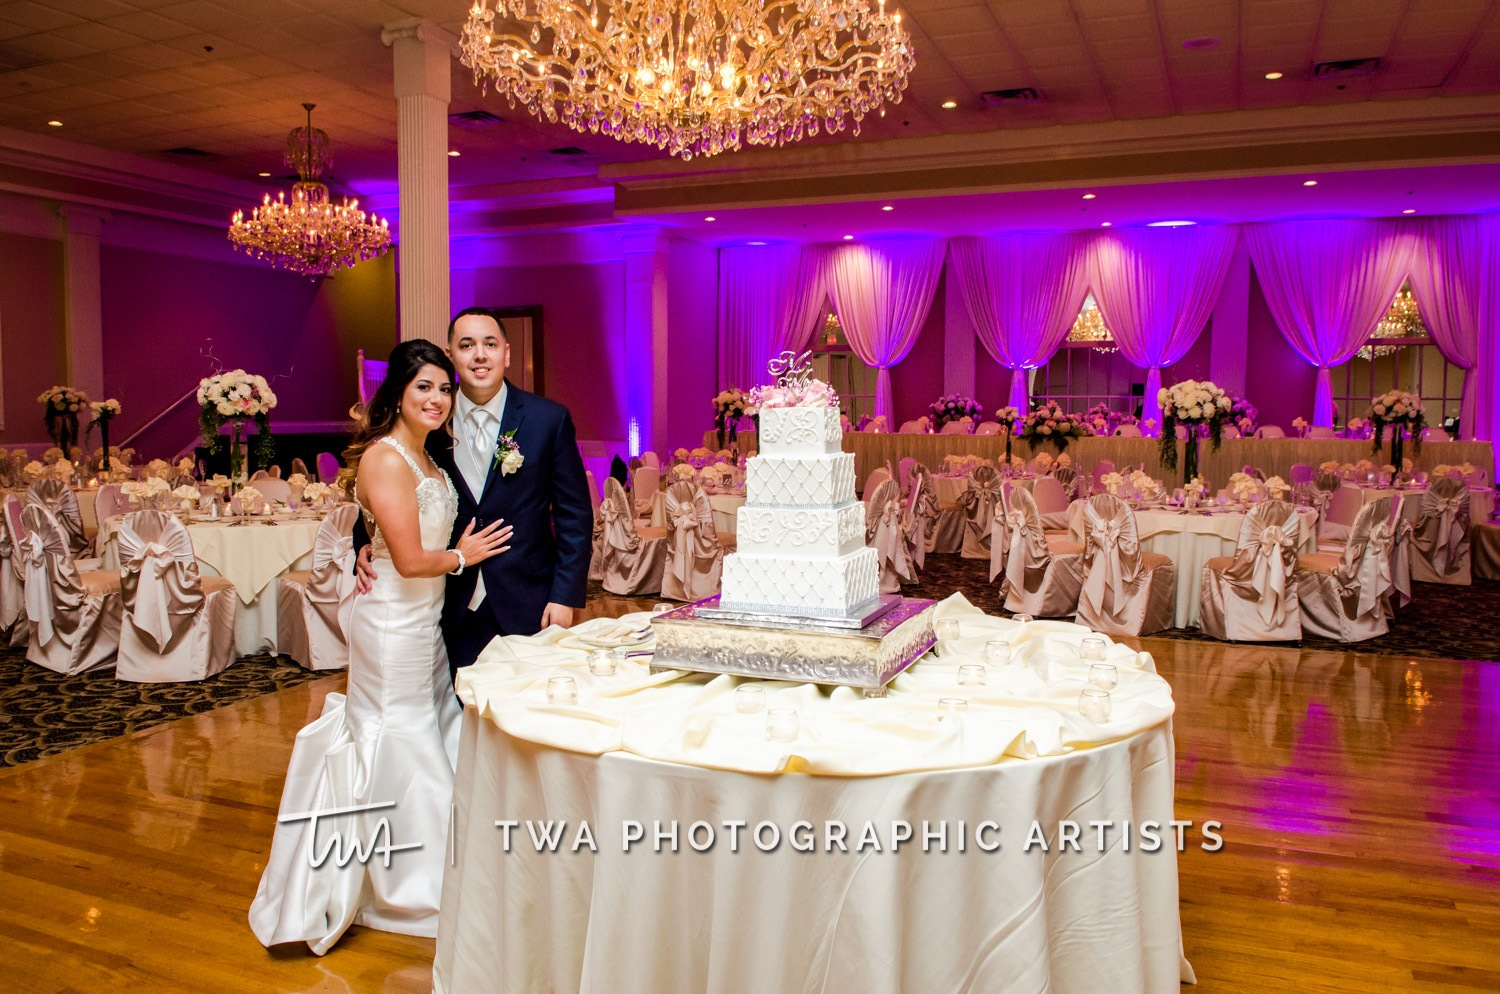 Chicago-Wedding-Photographer-TWA-Photographic-Artists-Abbington-Banquets_Marmolego_Alcaraz_NO_CL-0726